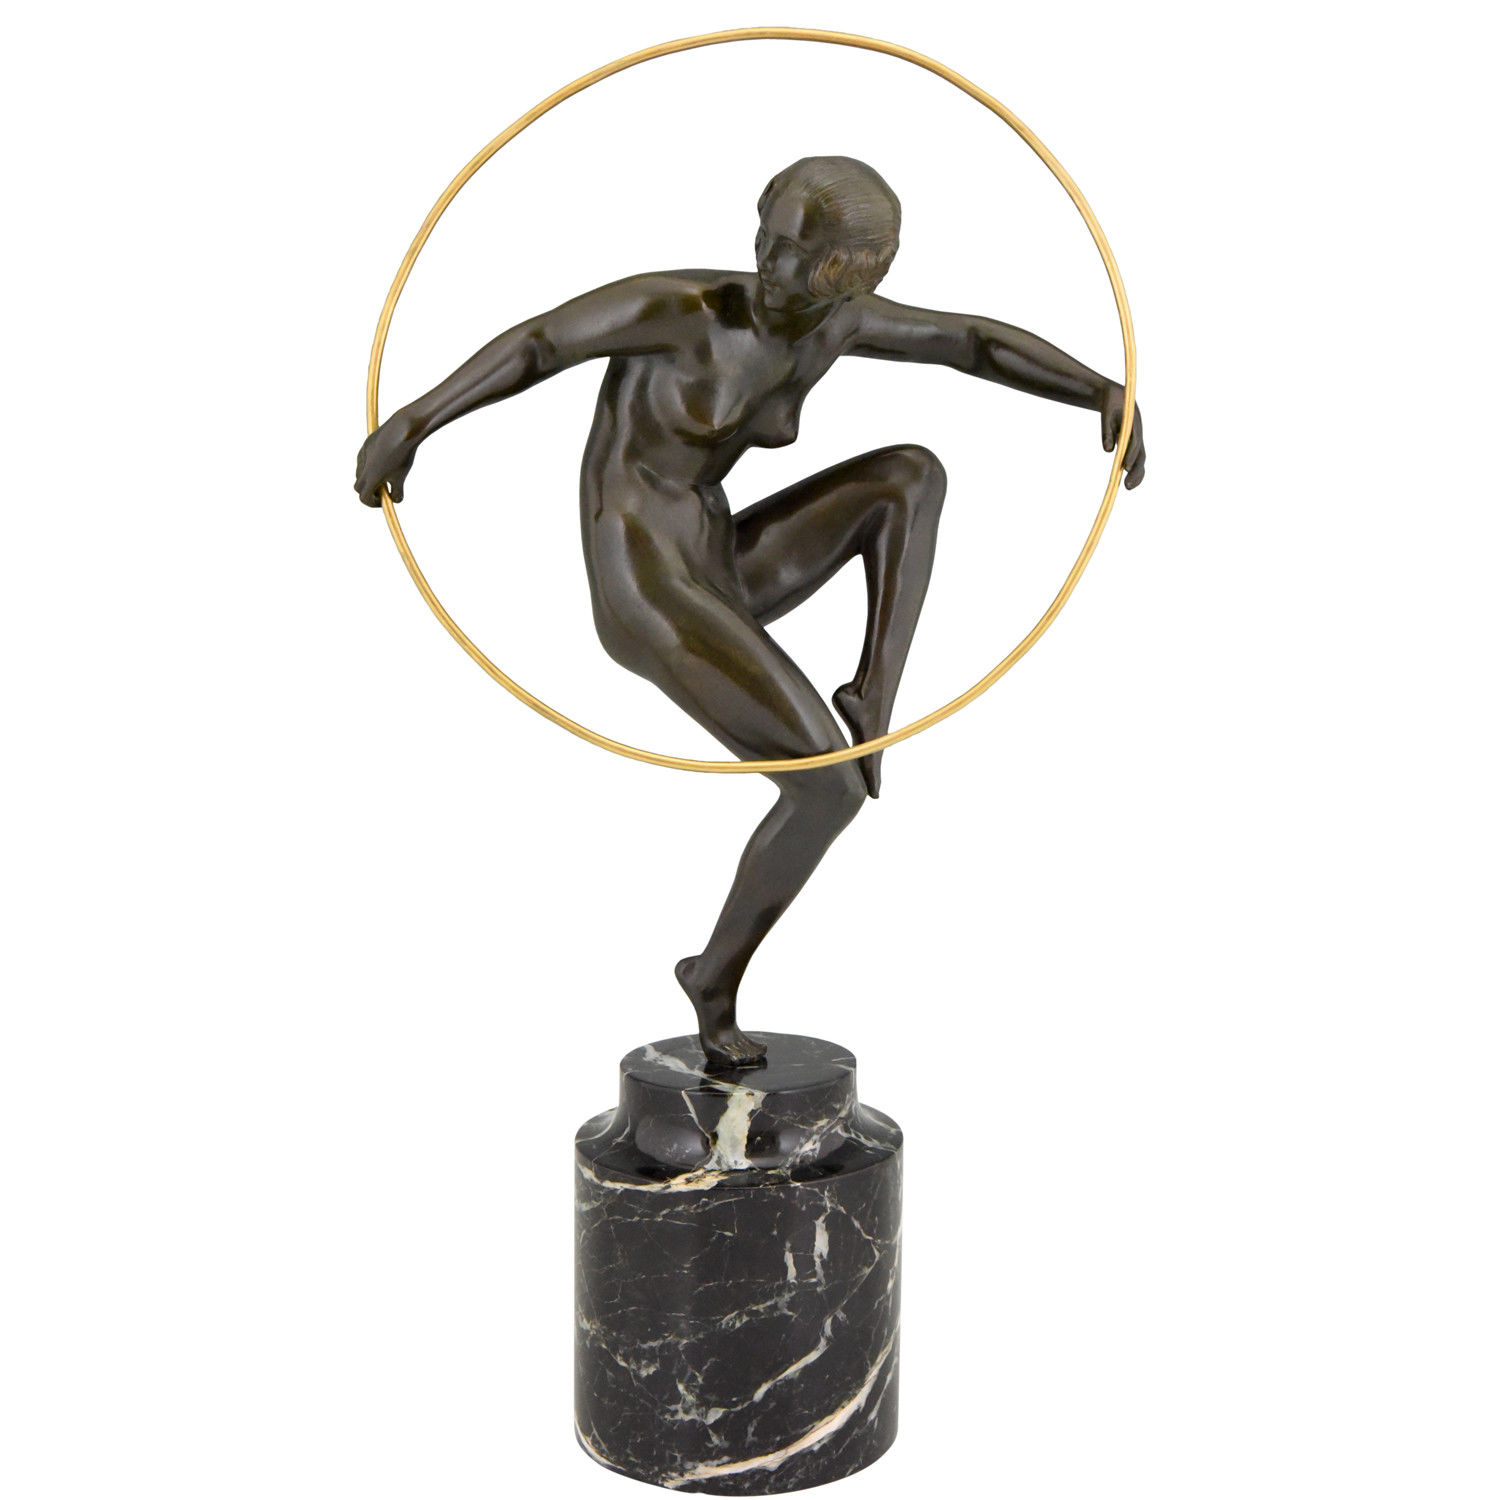 Art deco 'Nude Hoop Dancer' by Andre Marcel Bouraine (Briand), c.a. 1925, by gallery 'Het Ware Huis'